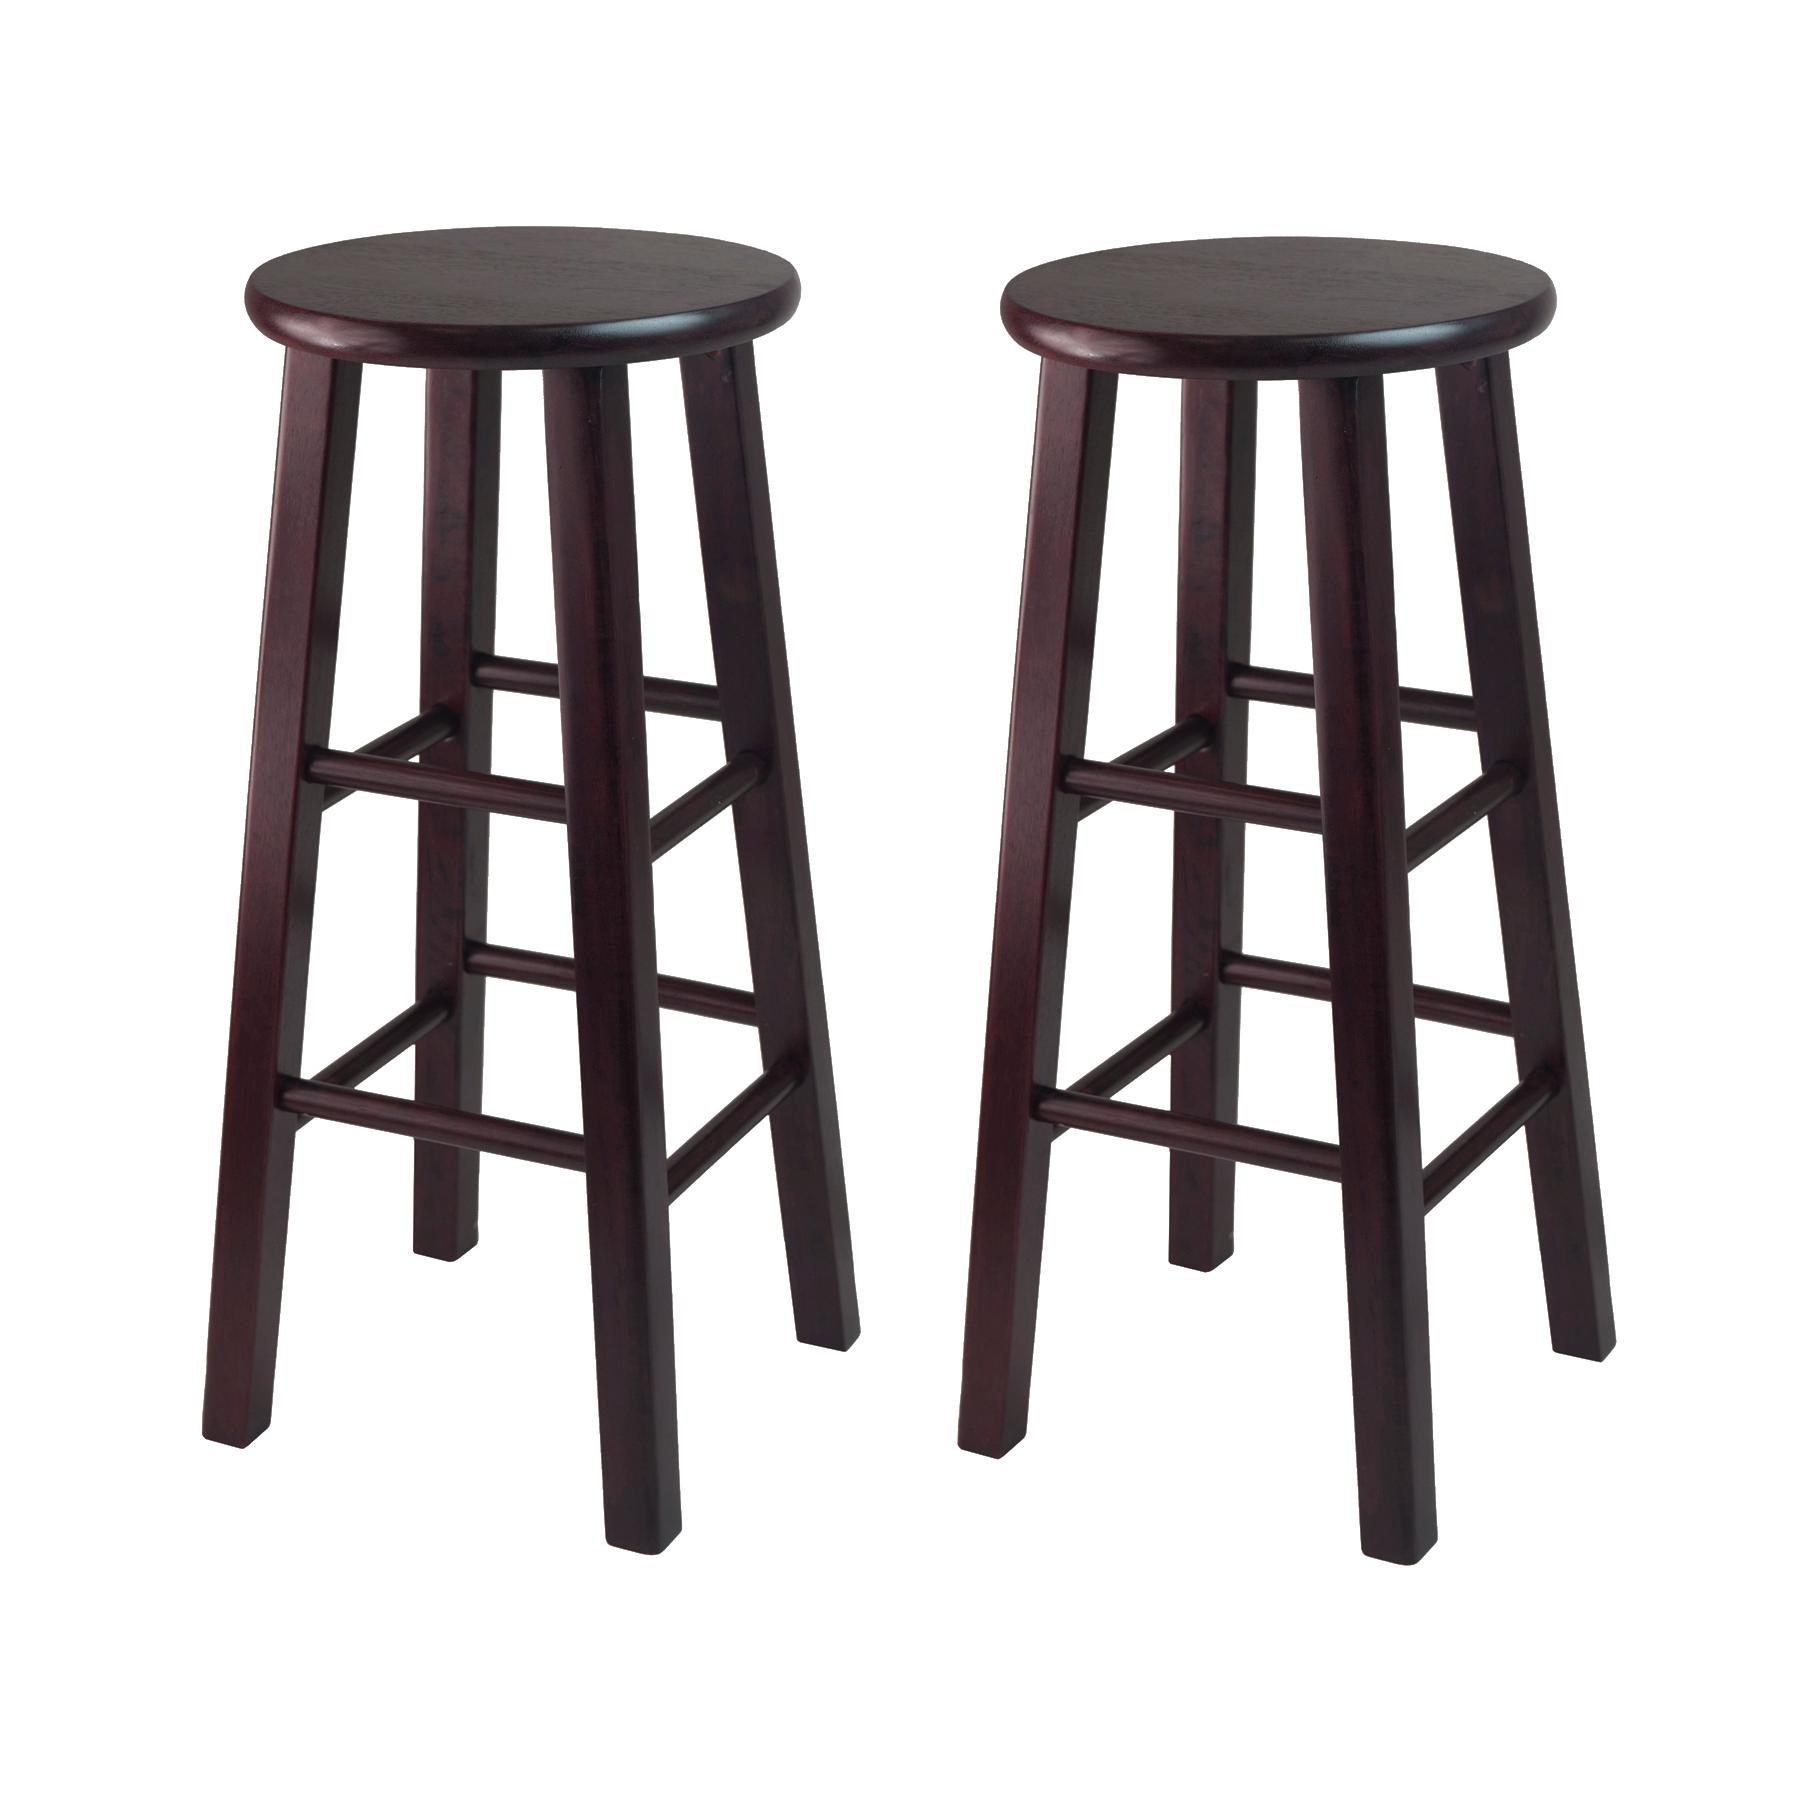 bar stools with backs winsome bar stool with square legs, 29-inch, espresso, set of 2 ssexrlw